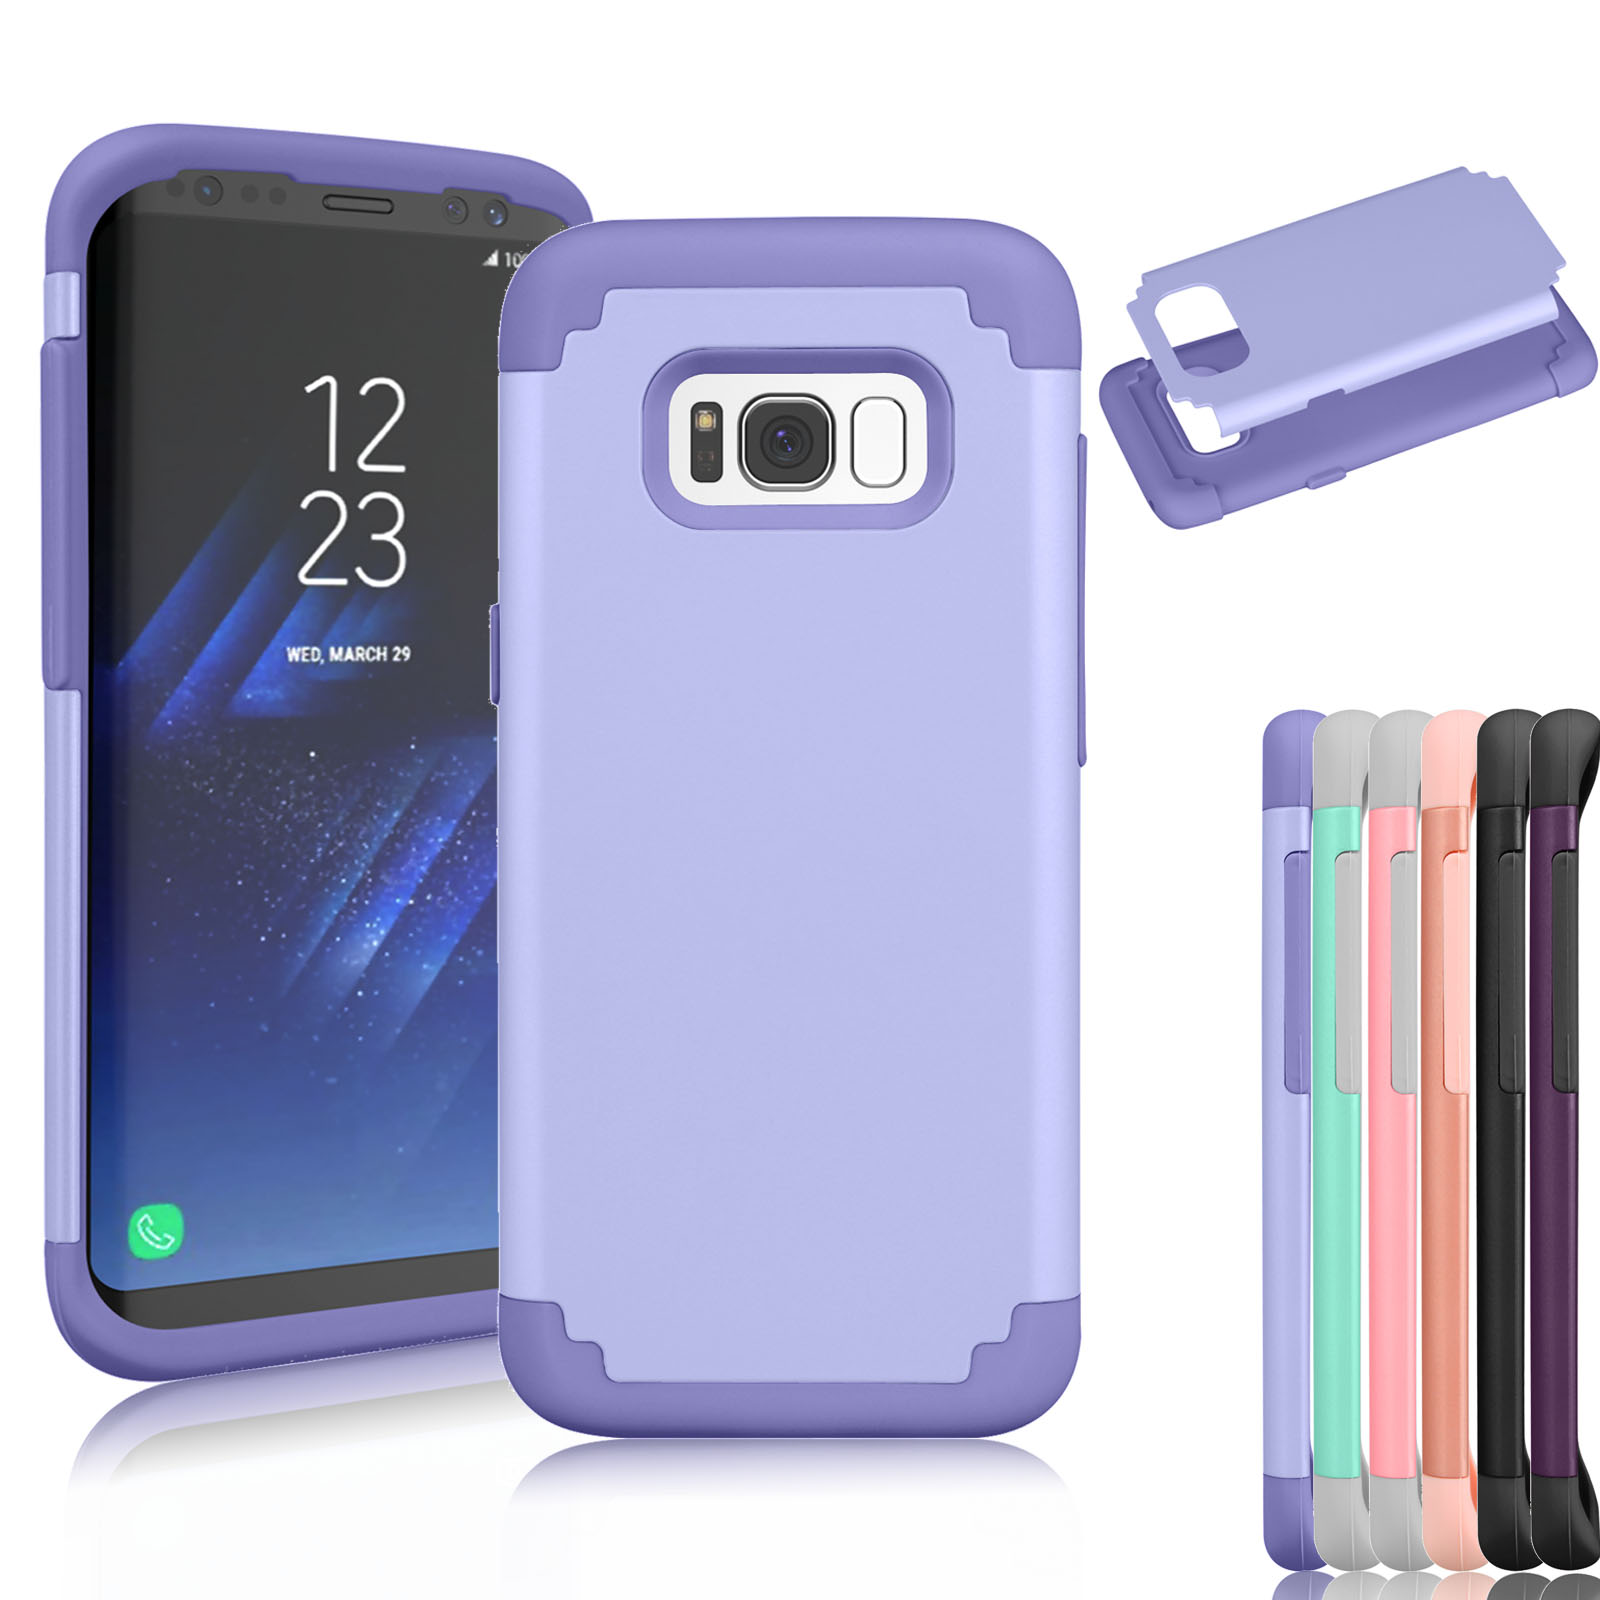 Galaxy S8 Case, Samsung S8 Case For Girls, Njjex [Lavender] Hybrid Rugged Rubber Shock Absorbing Plastic Impact Defender Hard Case Cover For Samsung Galaxy S8 S VIII GS8